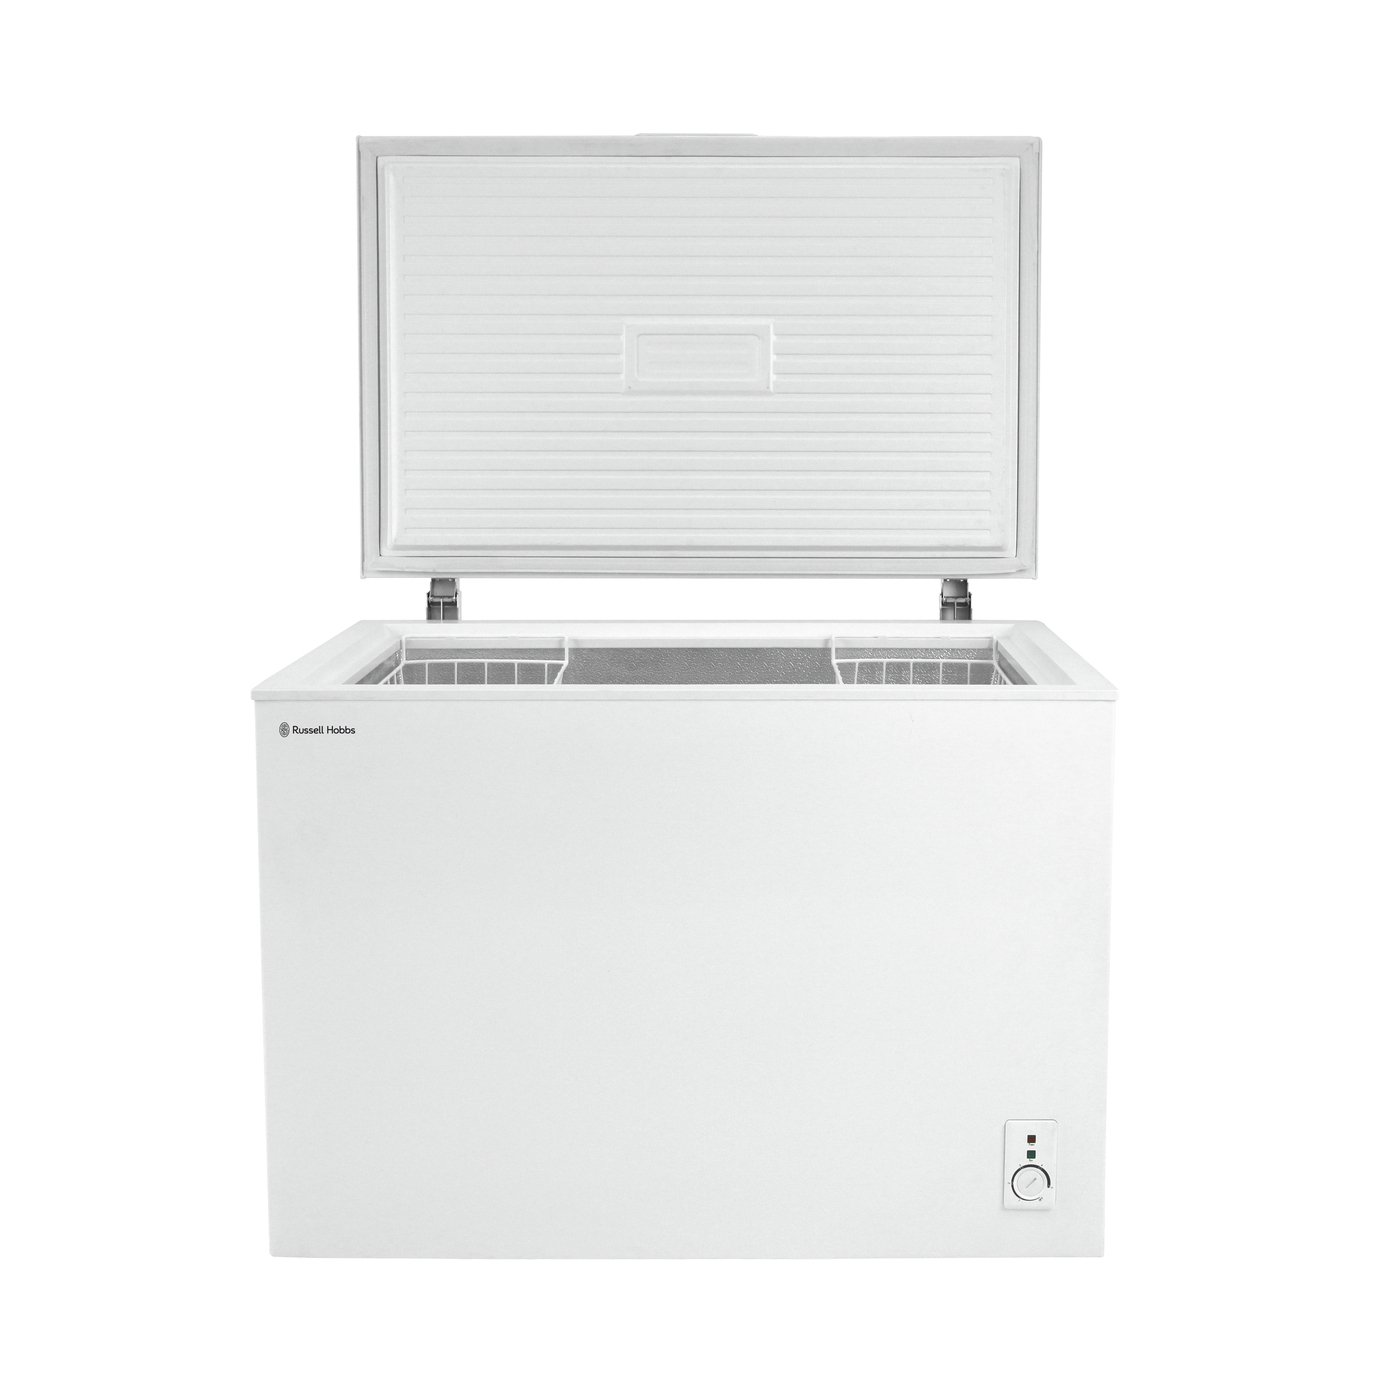 Russell Hobbs RHCF300 Chest Freezer - White.